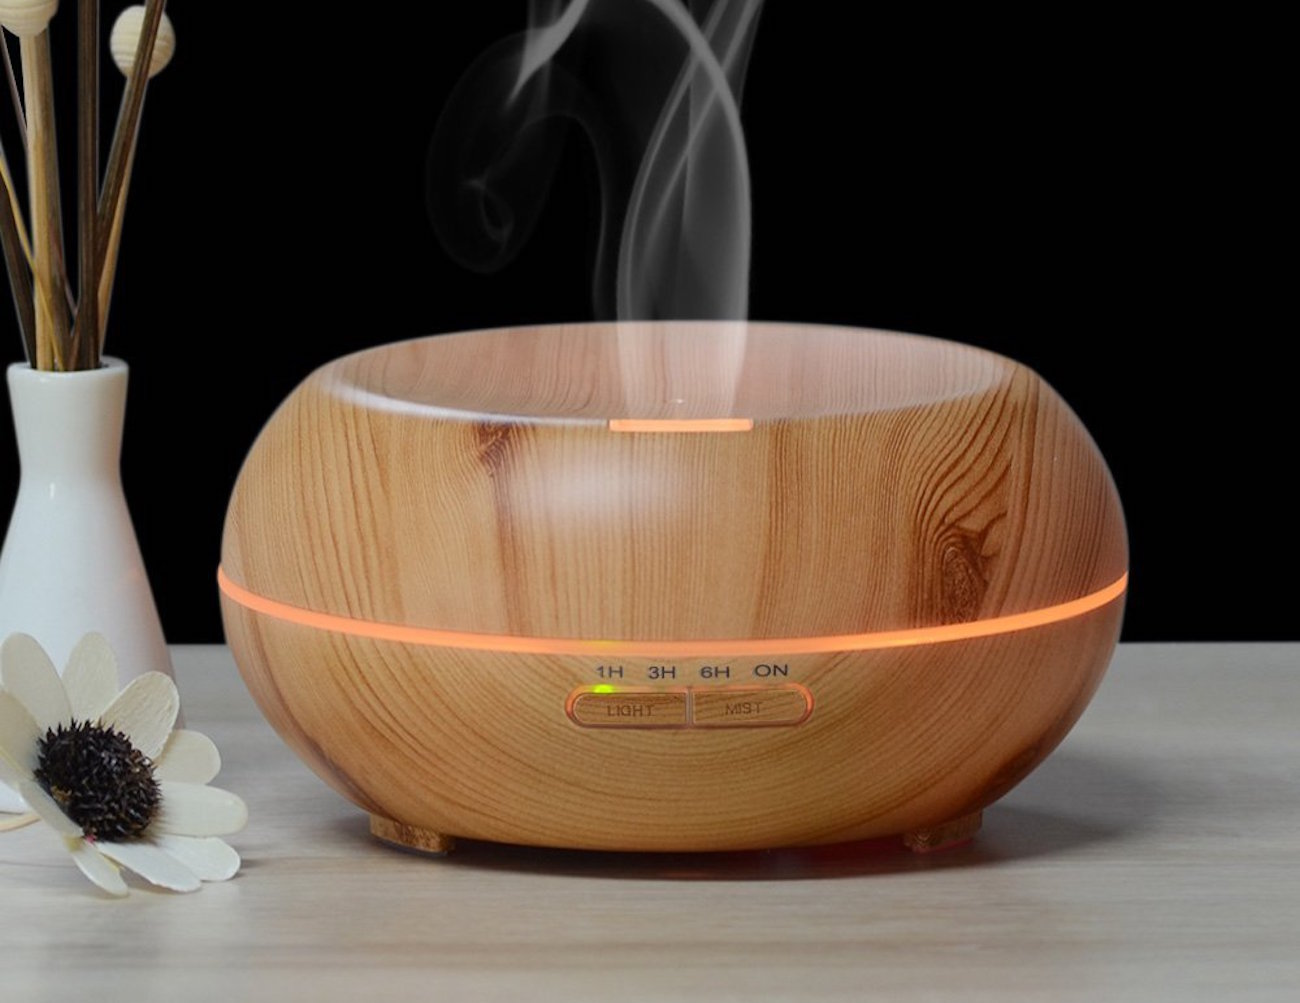 Ultrasonic Oil Diffuser ~ Innogear wood grain ultrasonic oil diffuser review the